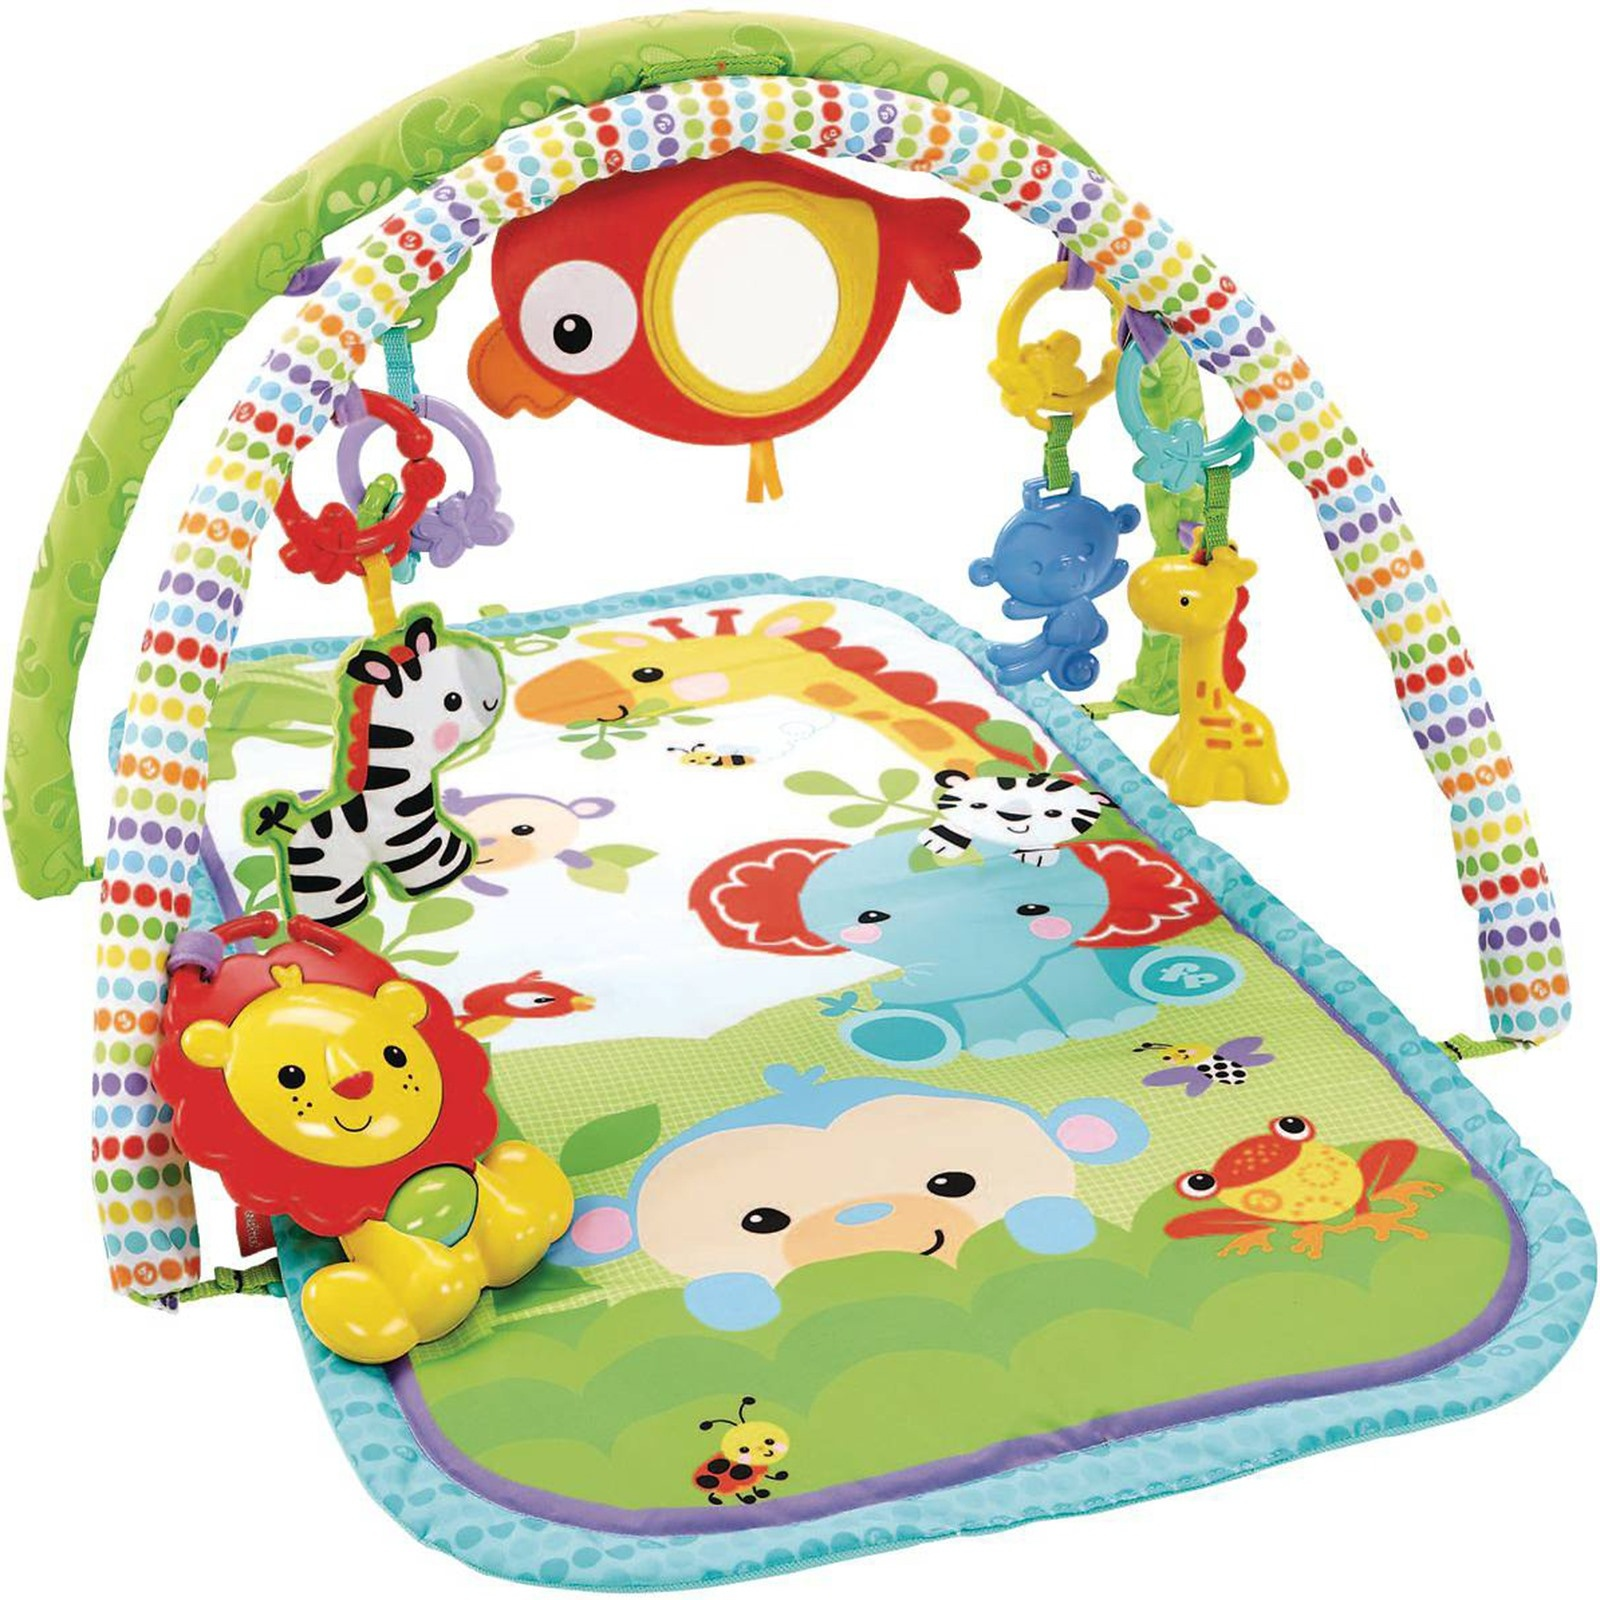 Ebebek Fisher Price Rainforest Friends 3-in-1 Musical Activity Gym